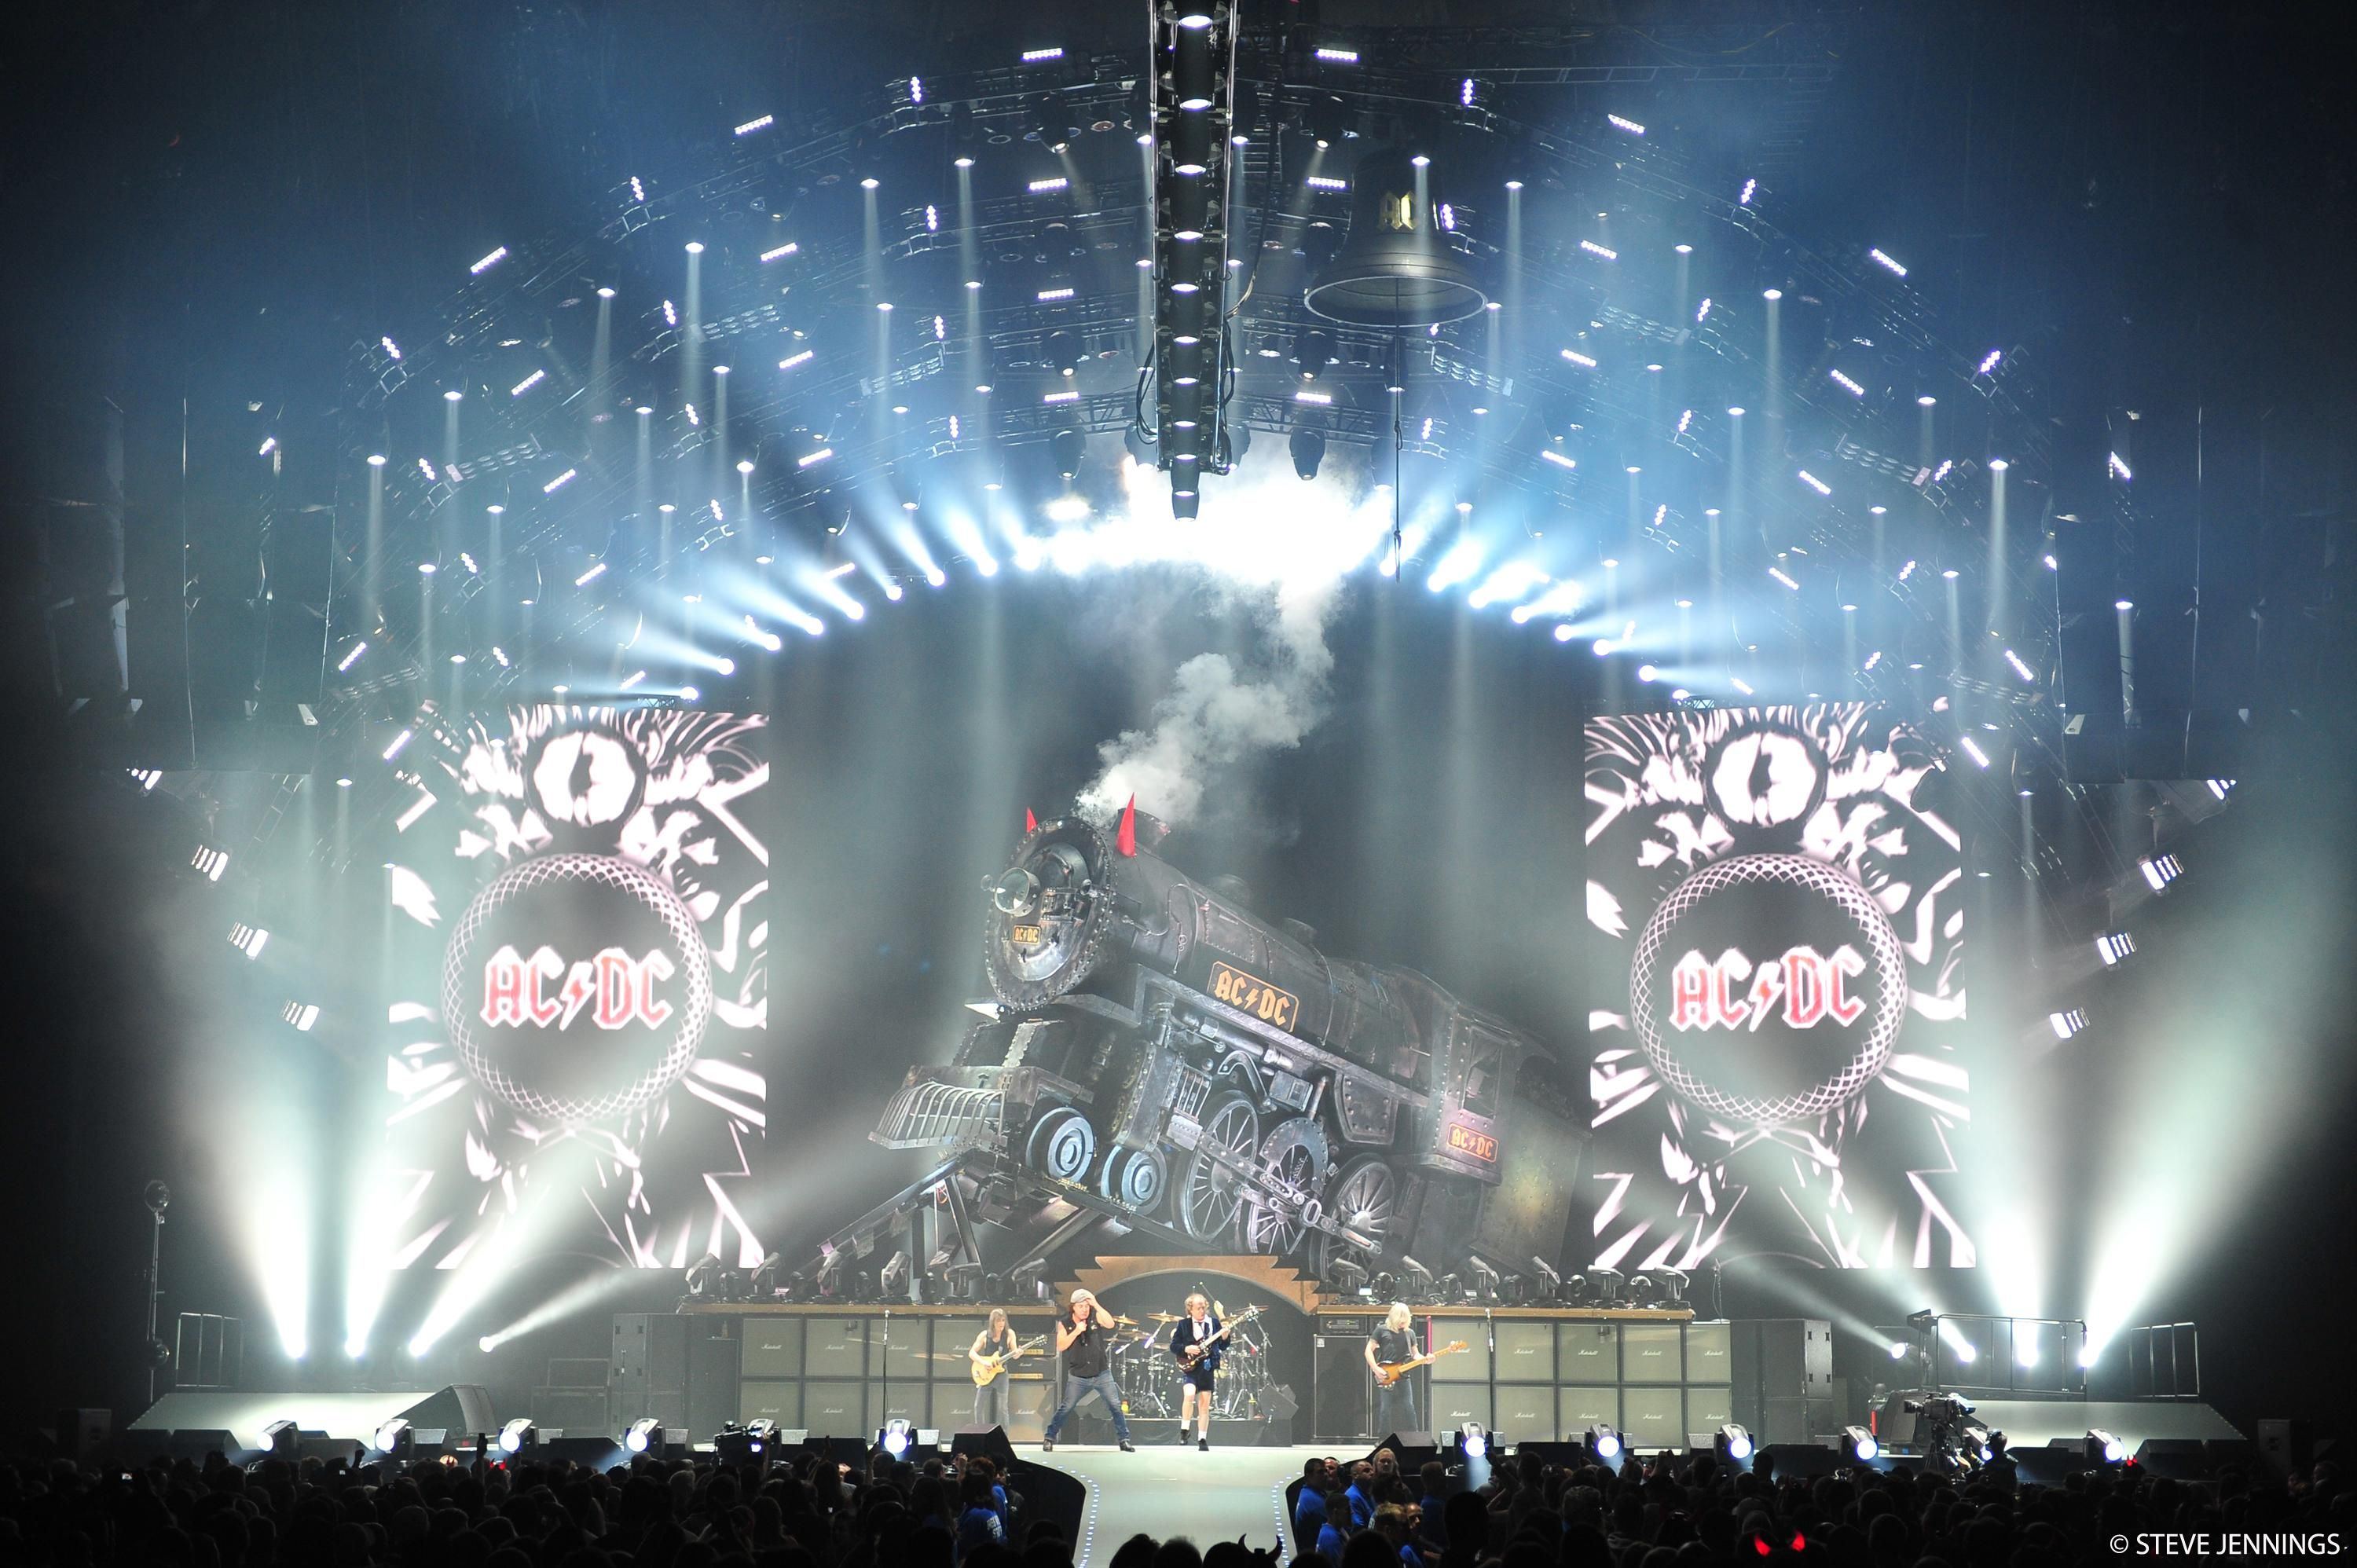 AC DC Live at River Plate | Music | Pinterest | Ac dc and Rock bands